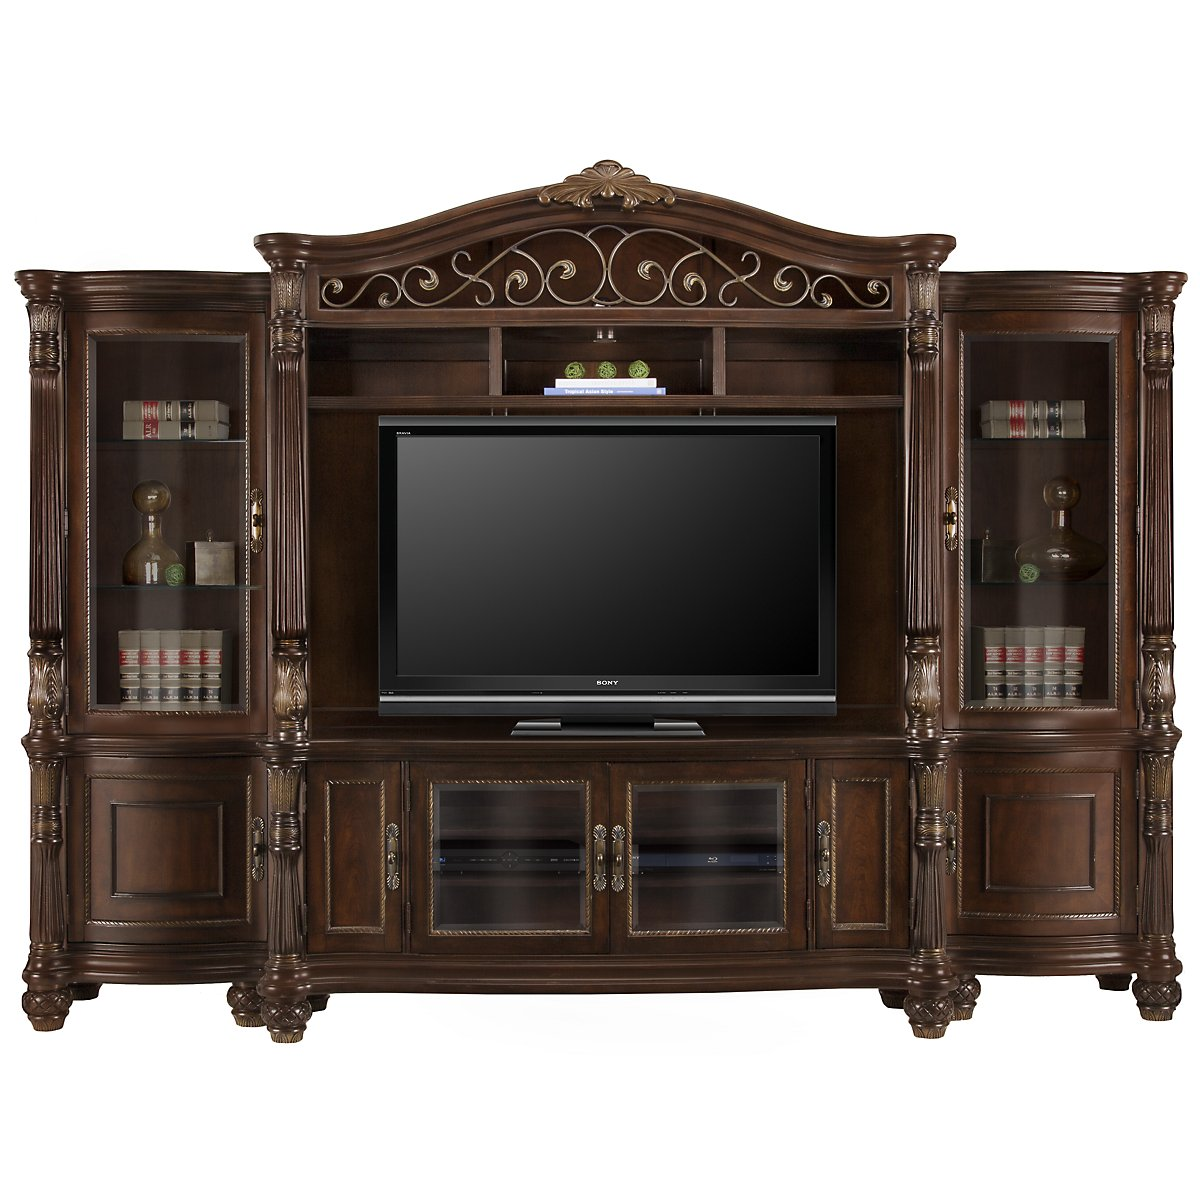 City Furniture Tradewinds Dark Tone 70 Quot Tv Stand